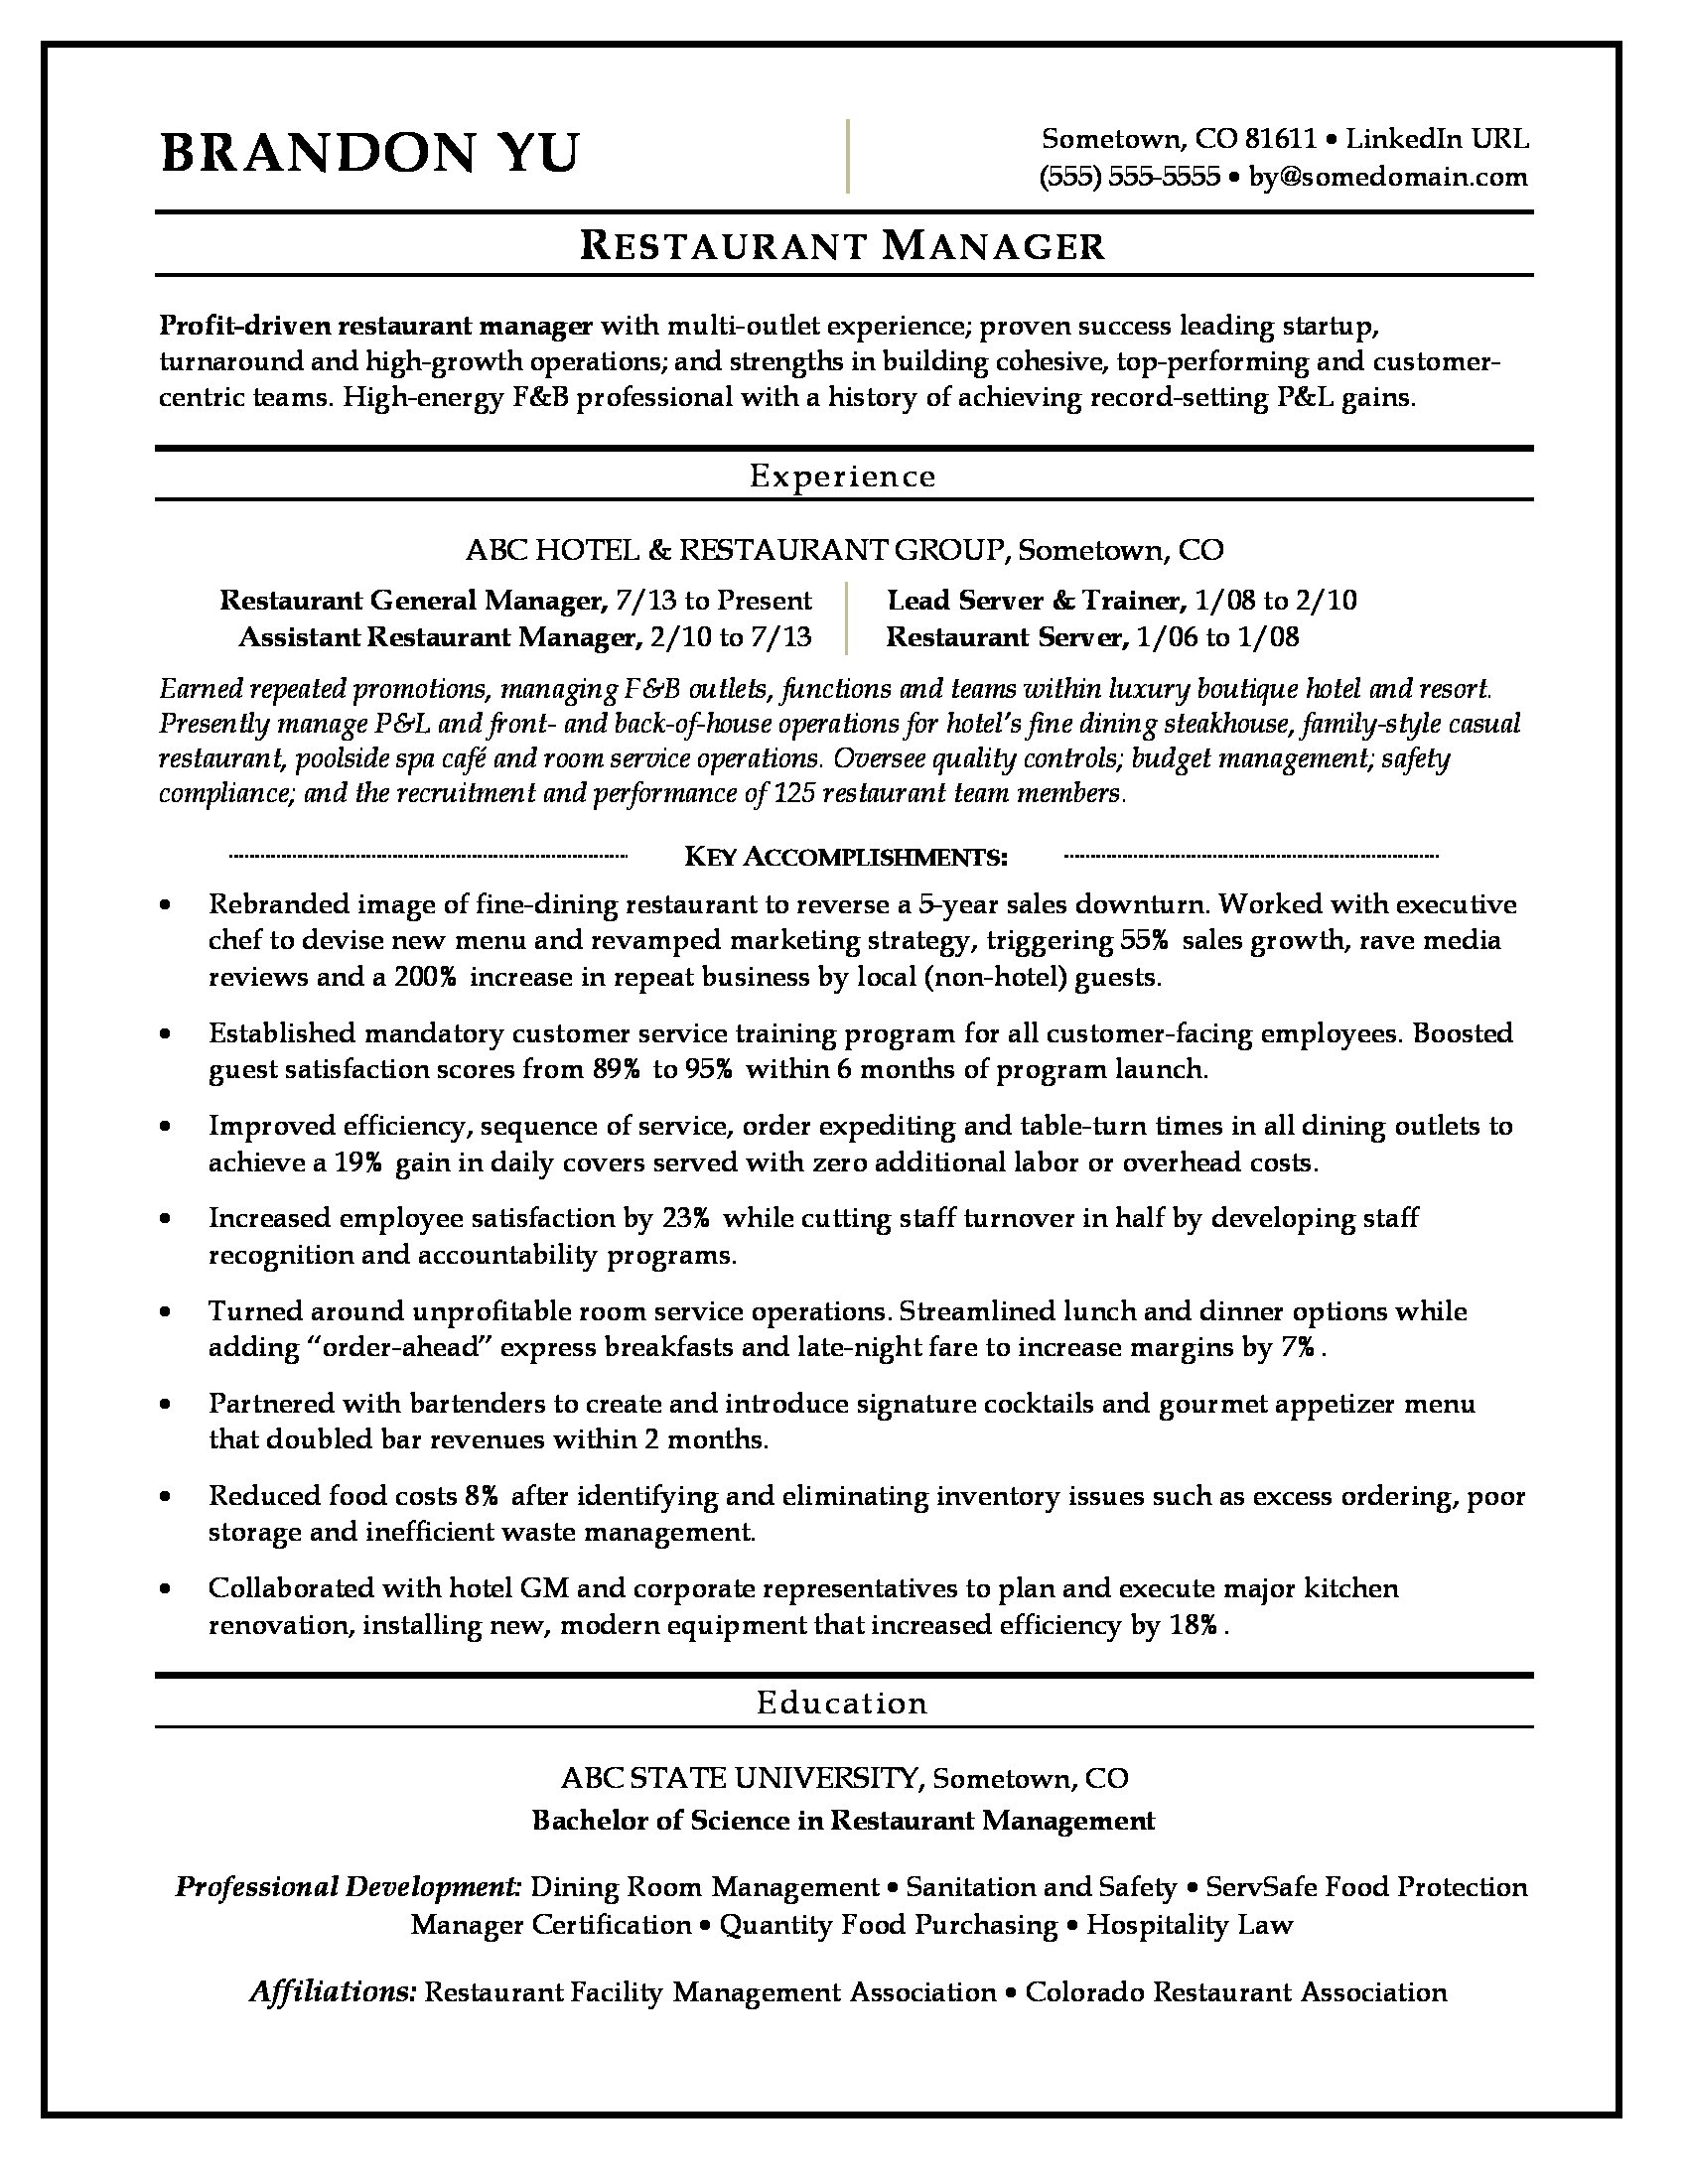 sample resume for a restaurant manager - Linkedin Url On Resume